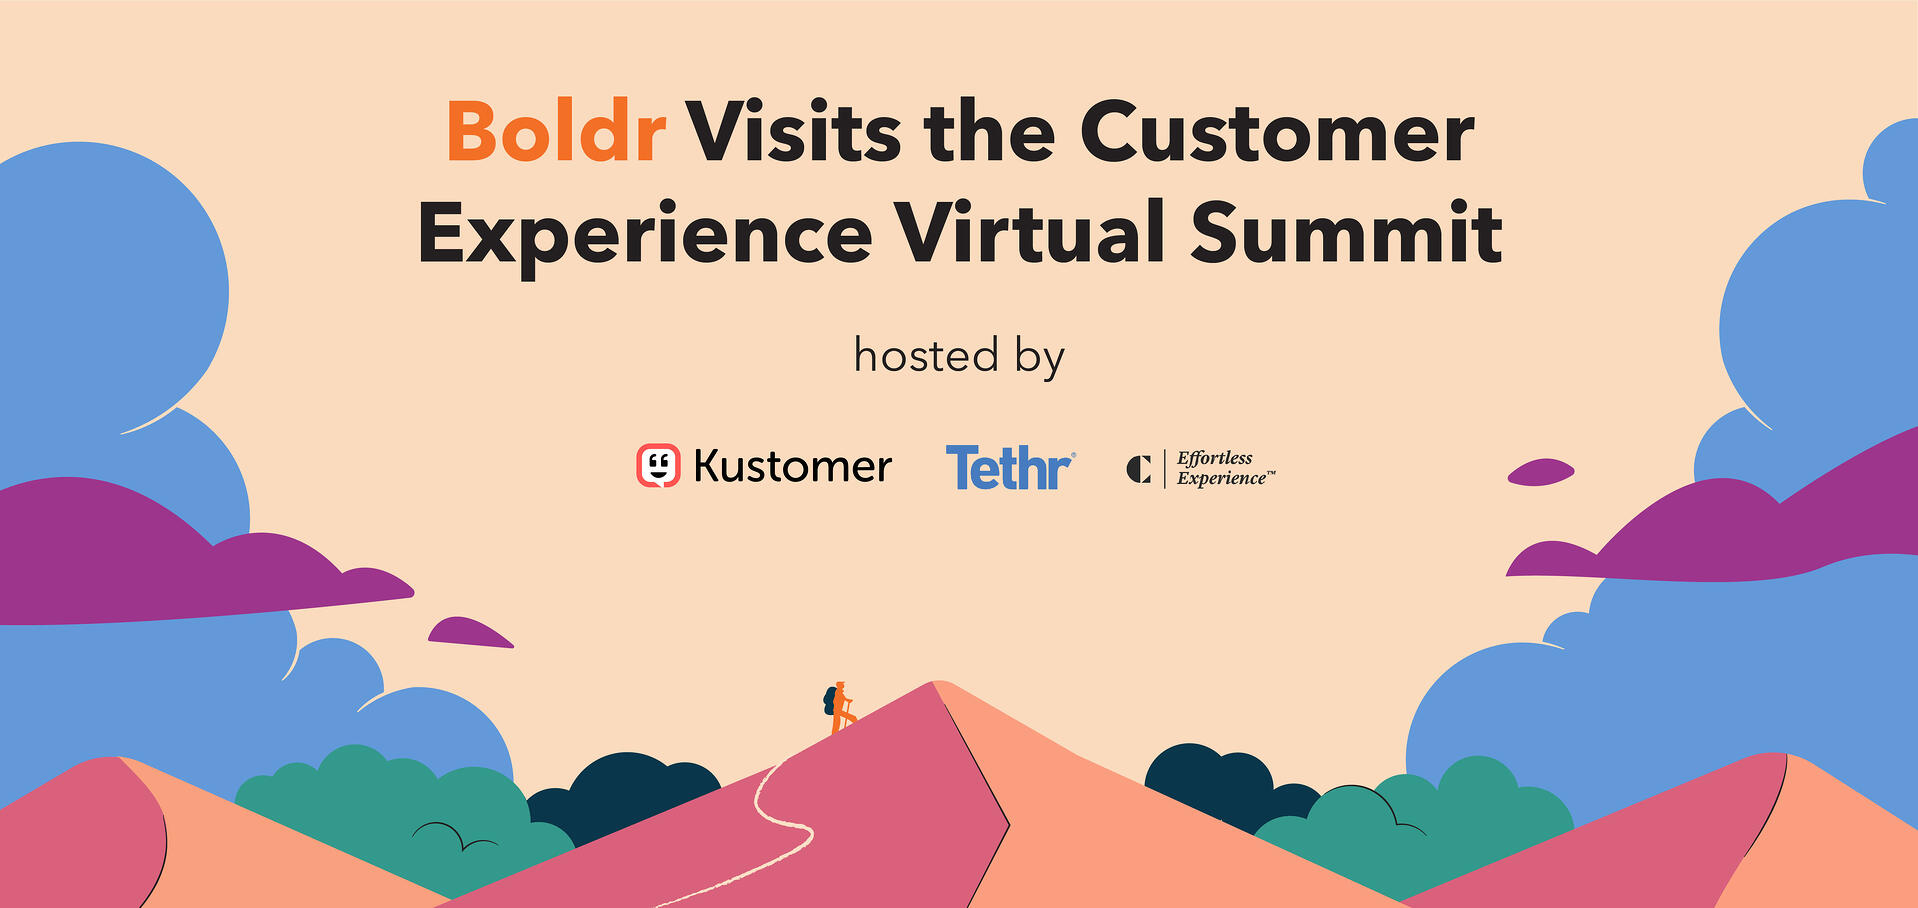 Boldr Visits the Customer Experience Virtual Summit